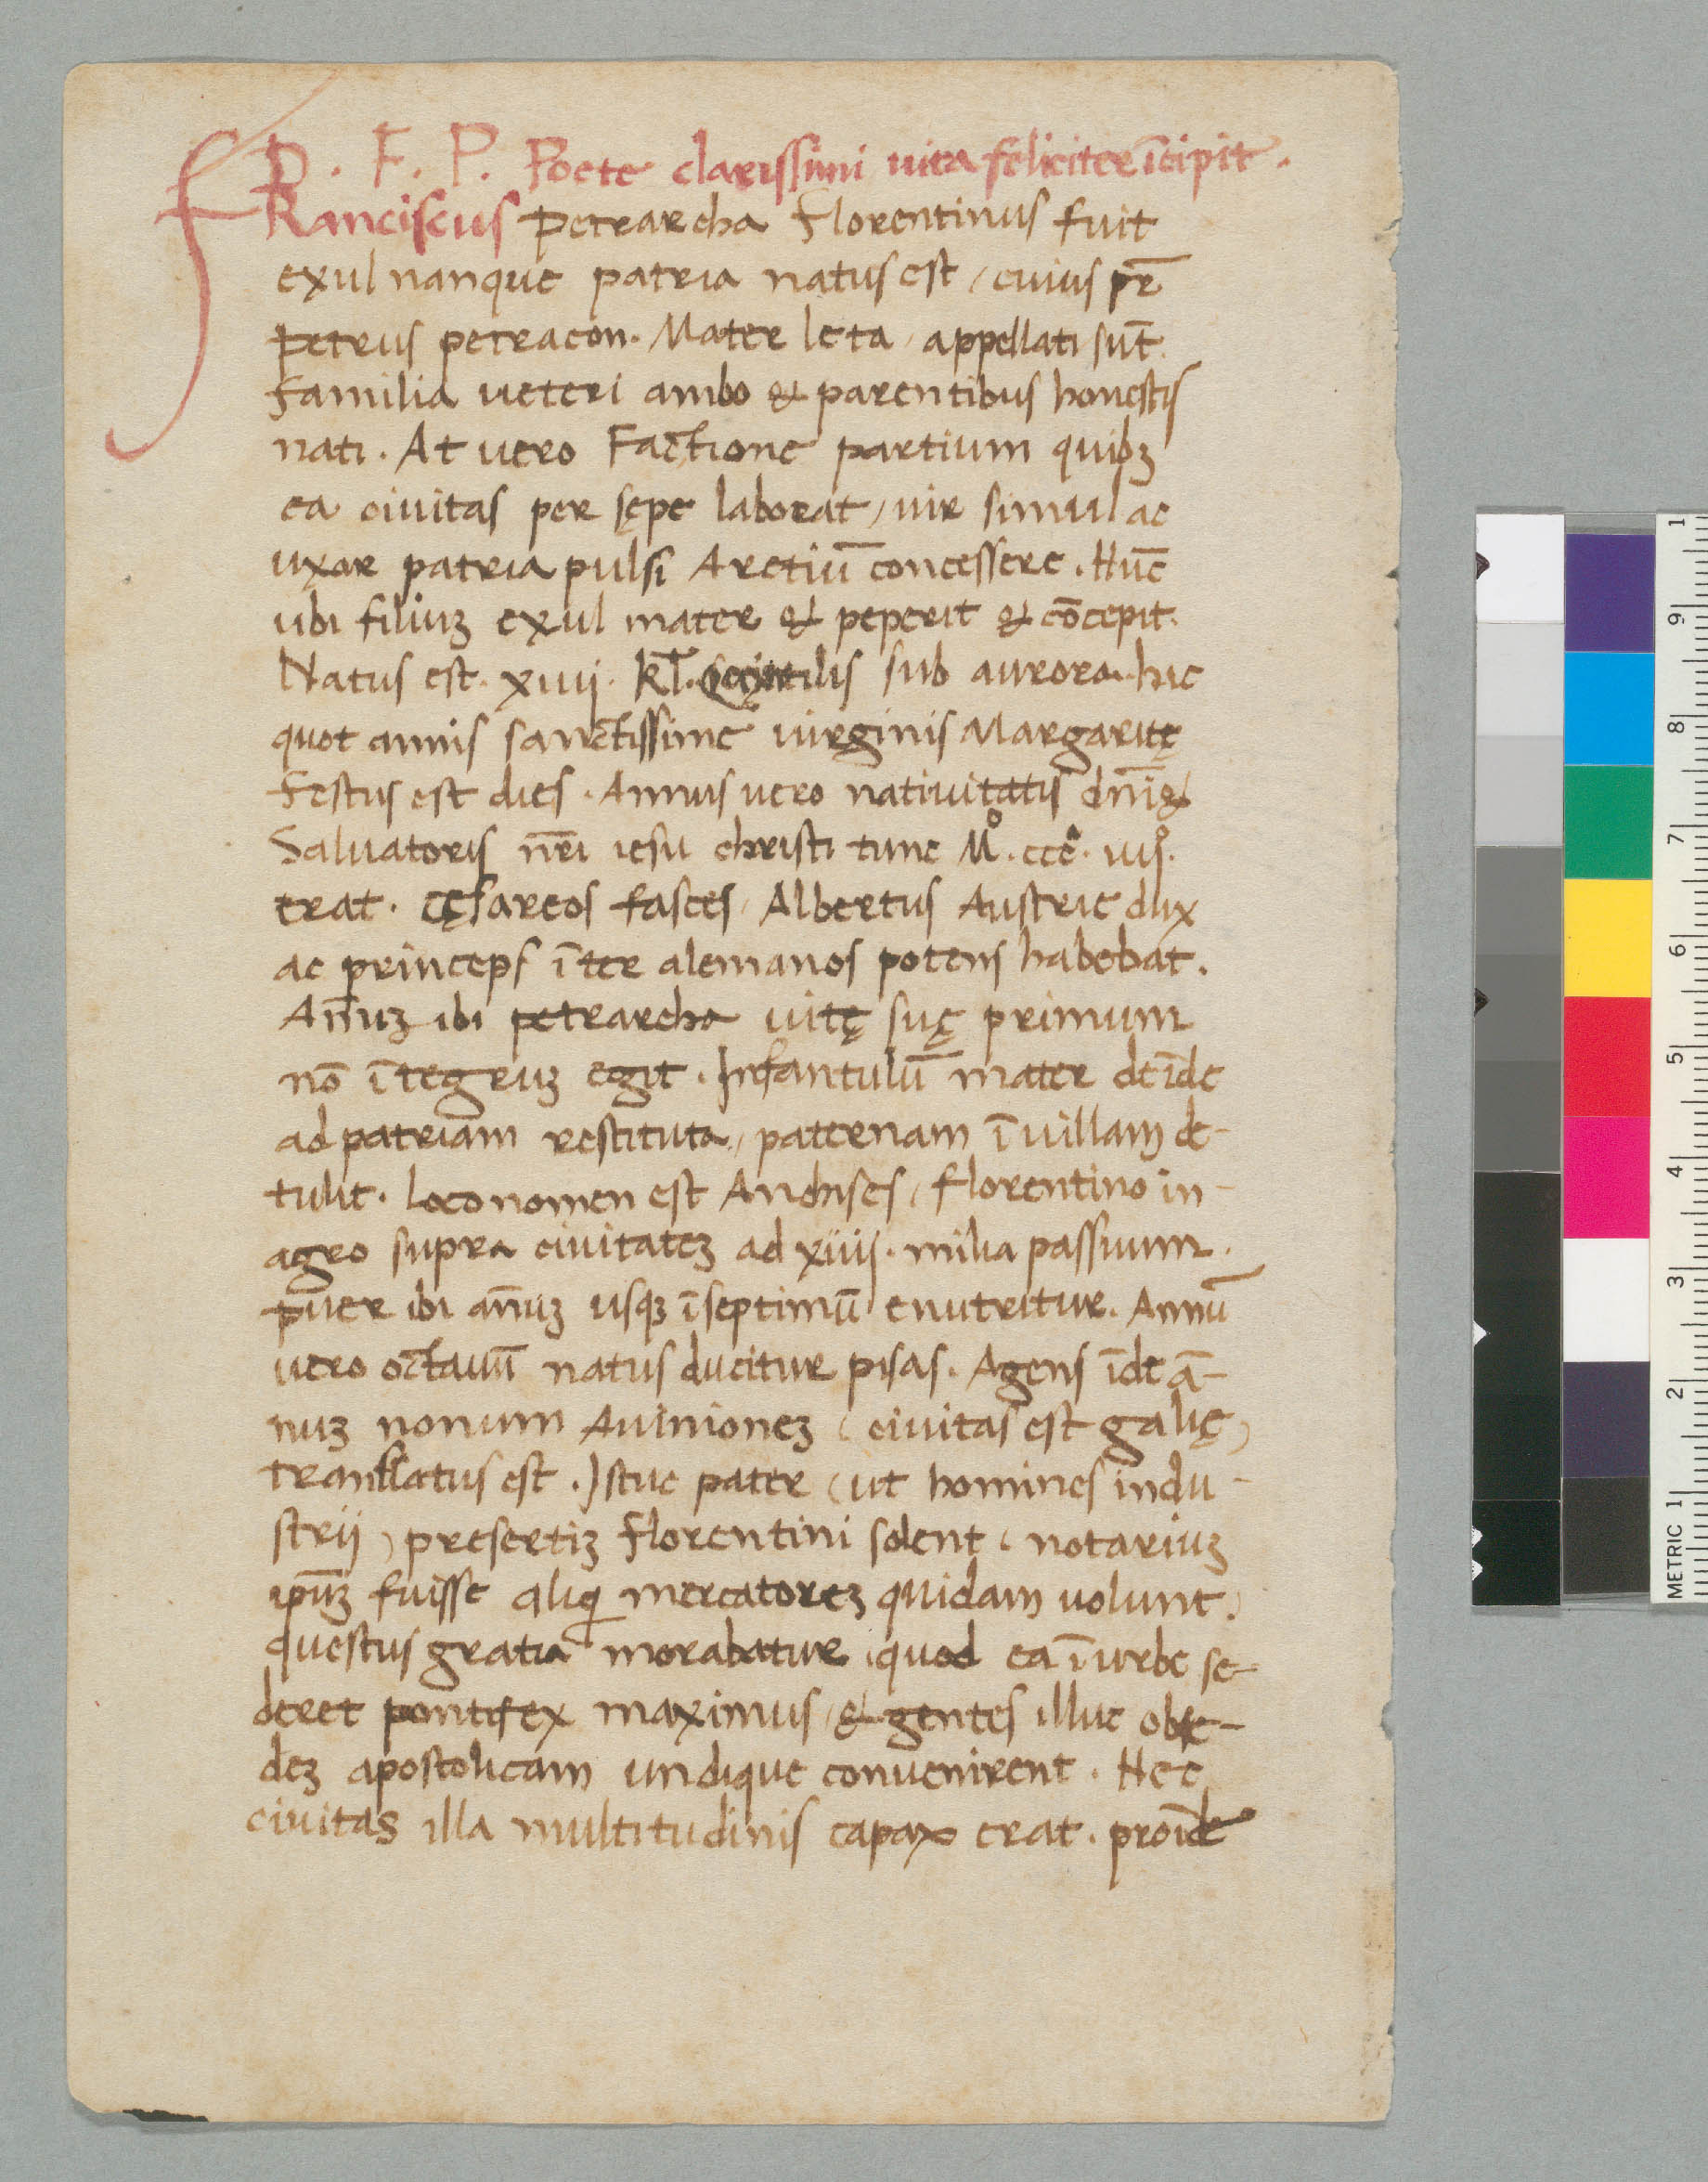 Davis, University of California, Shields Library, Special Collections, UCD D-041:23, f. 1v